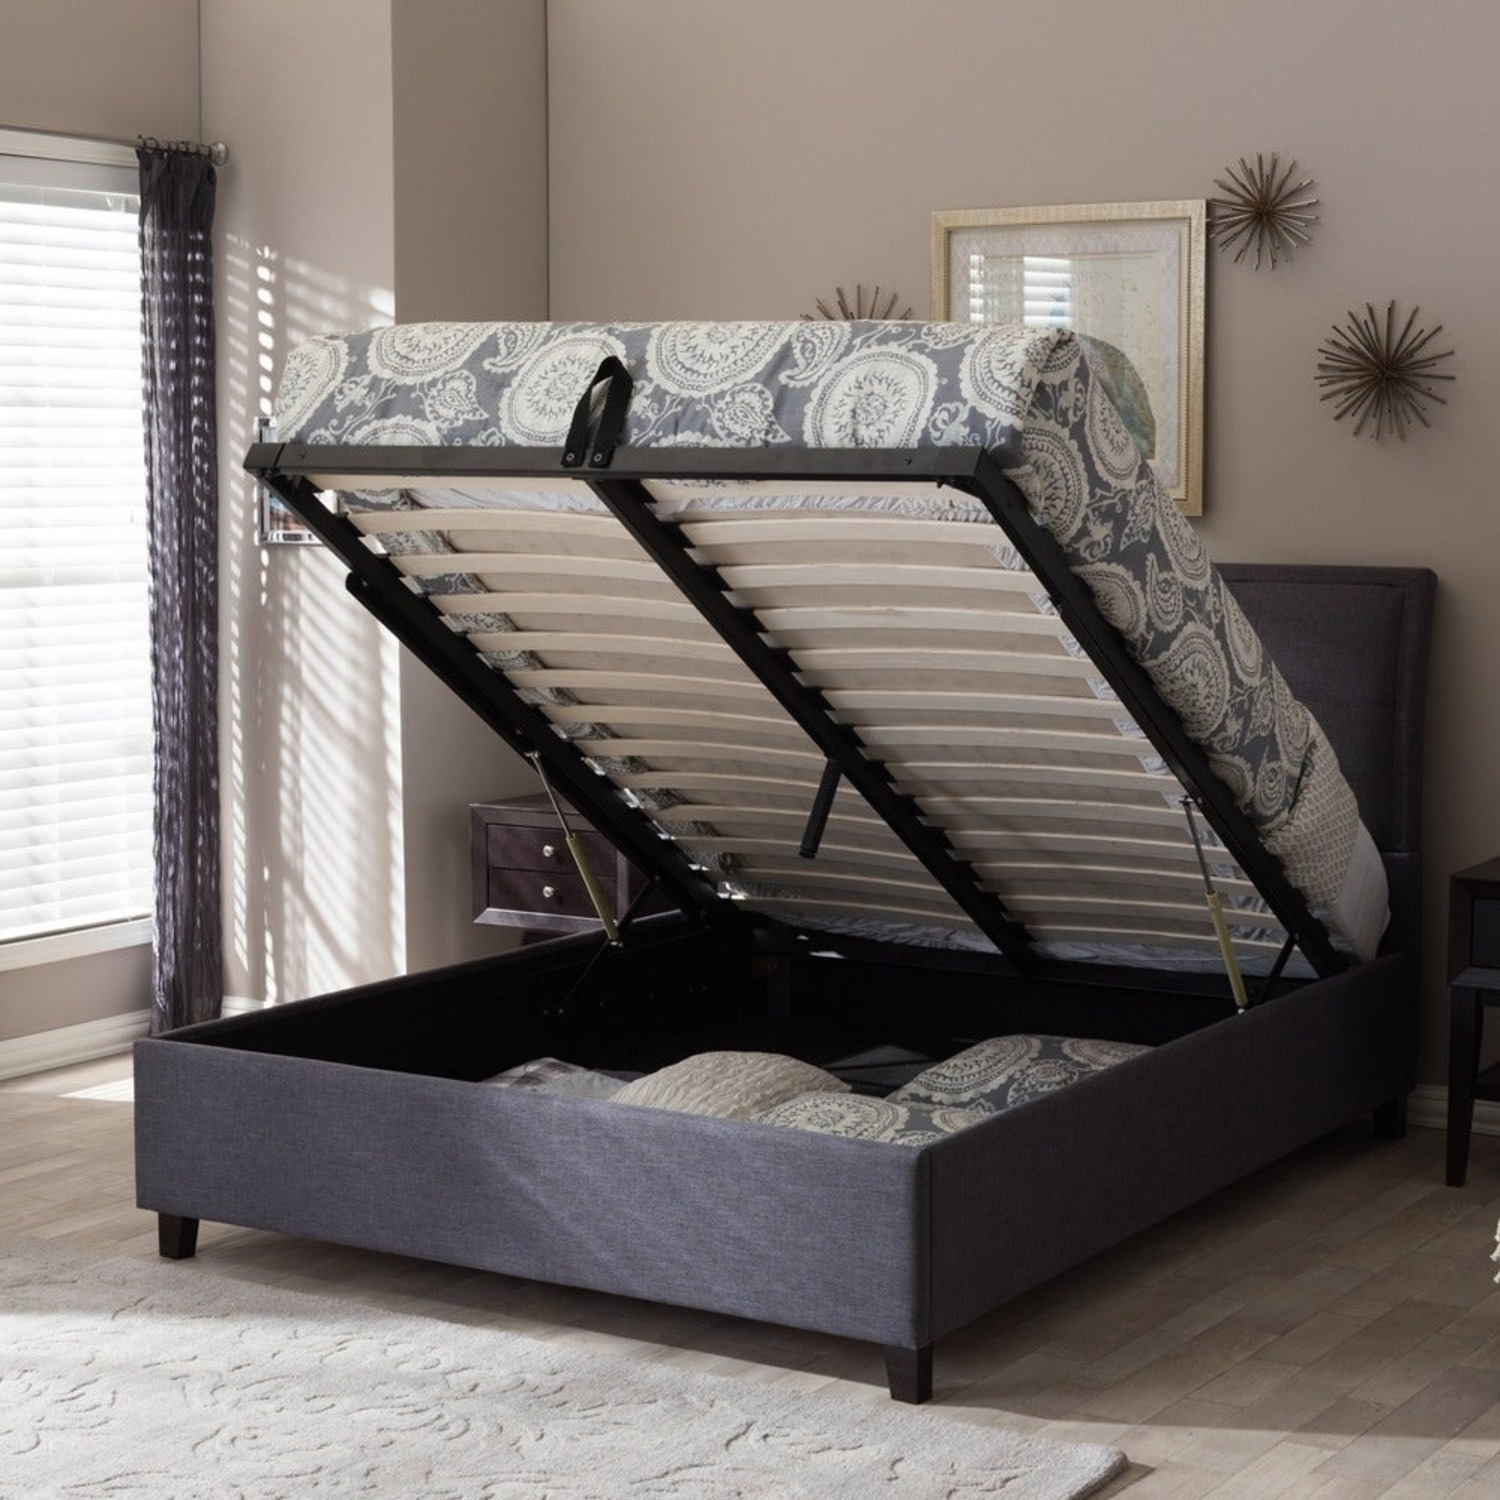 Queen Charcoal Tufted Storage Bed - image-4